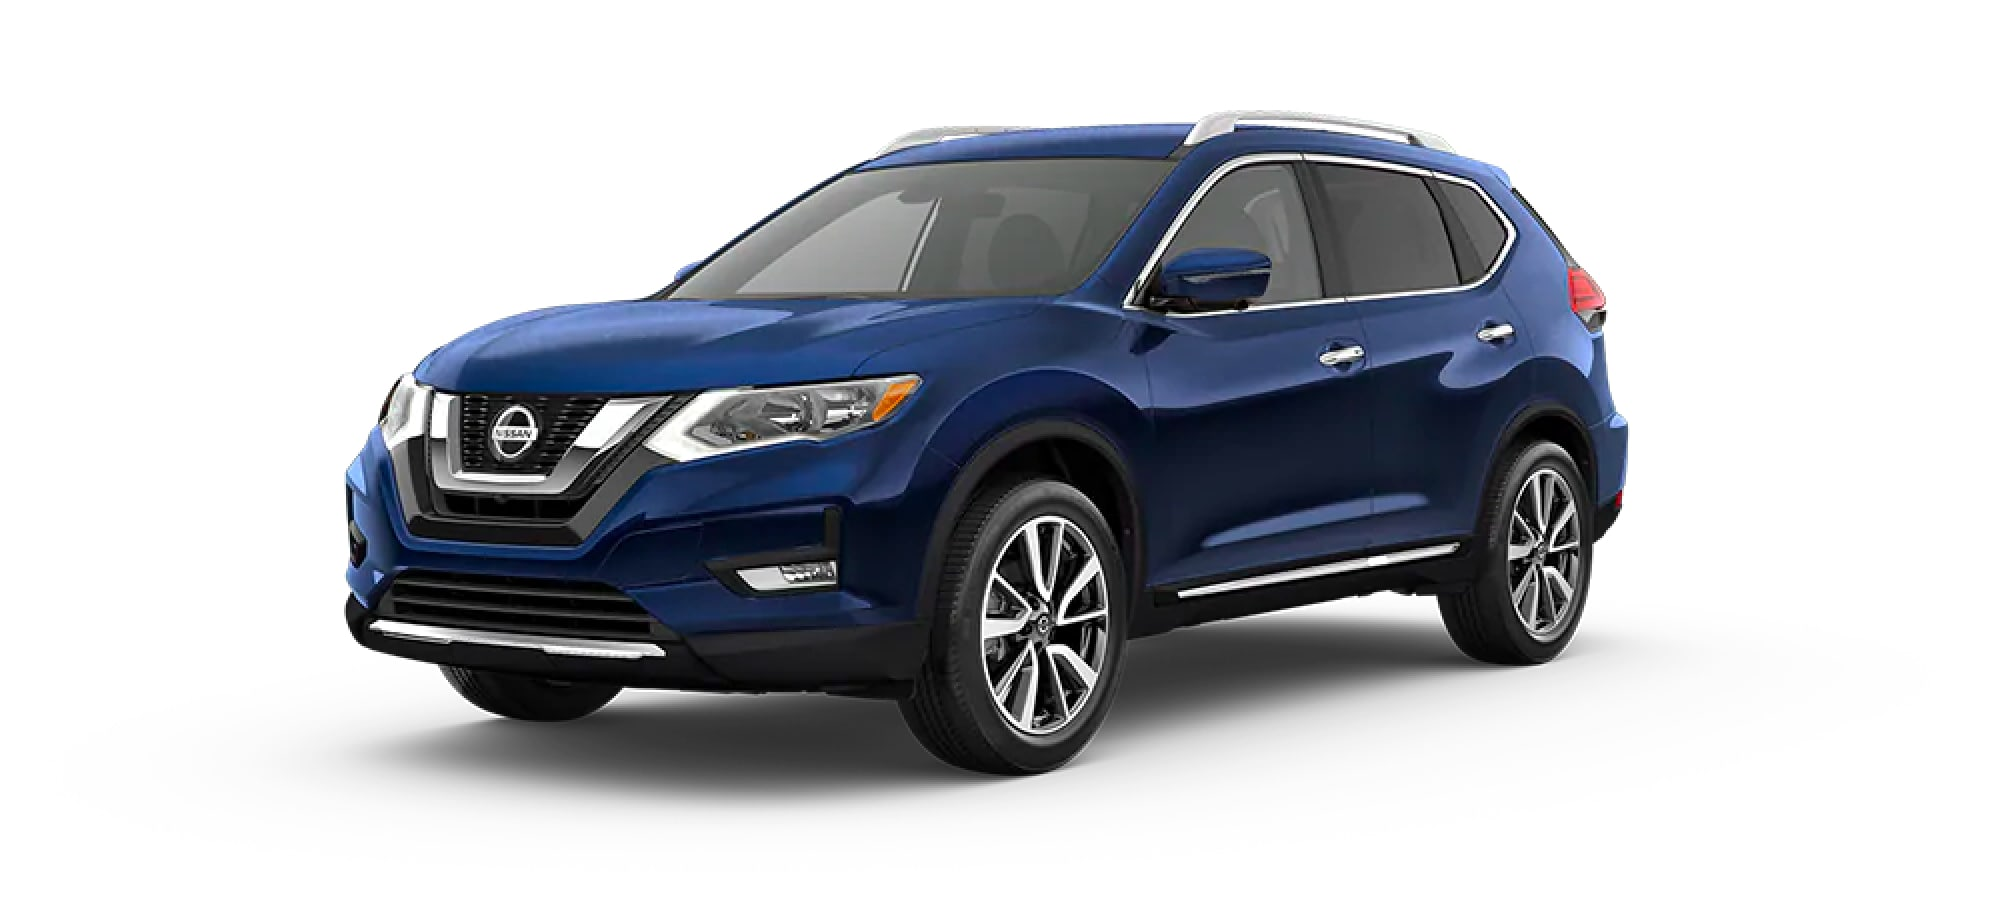 2020 Nissan Rogue in Caspian Blue Metallic